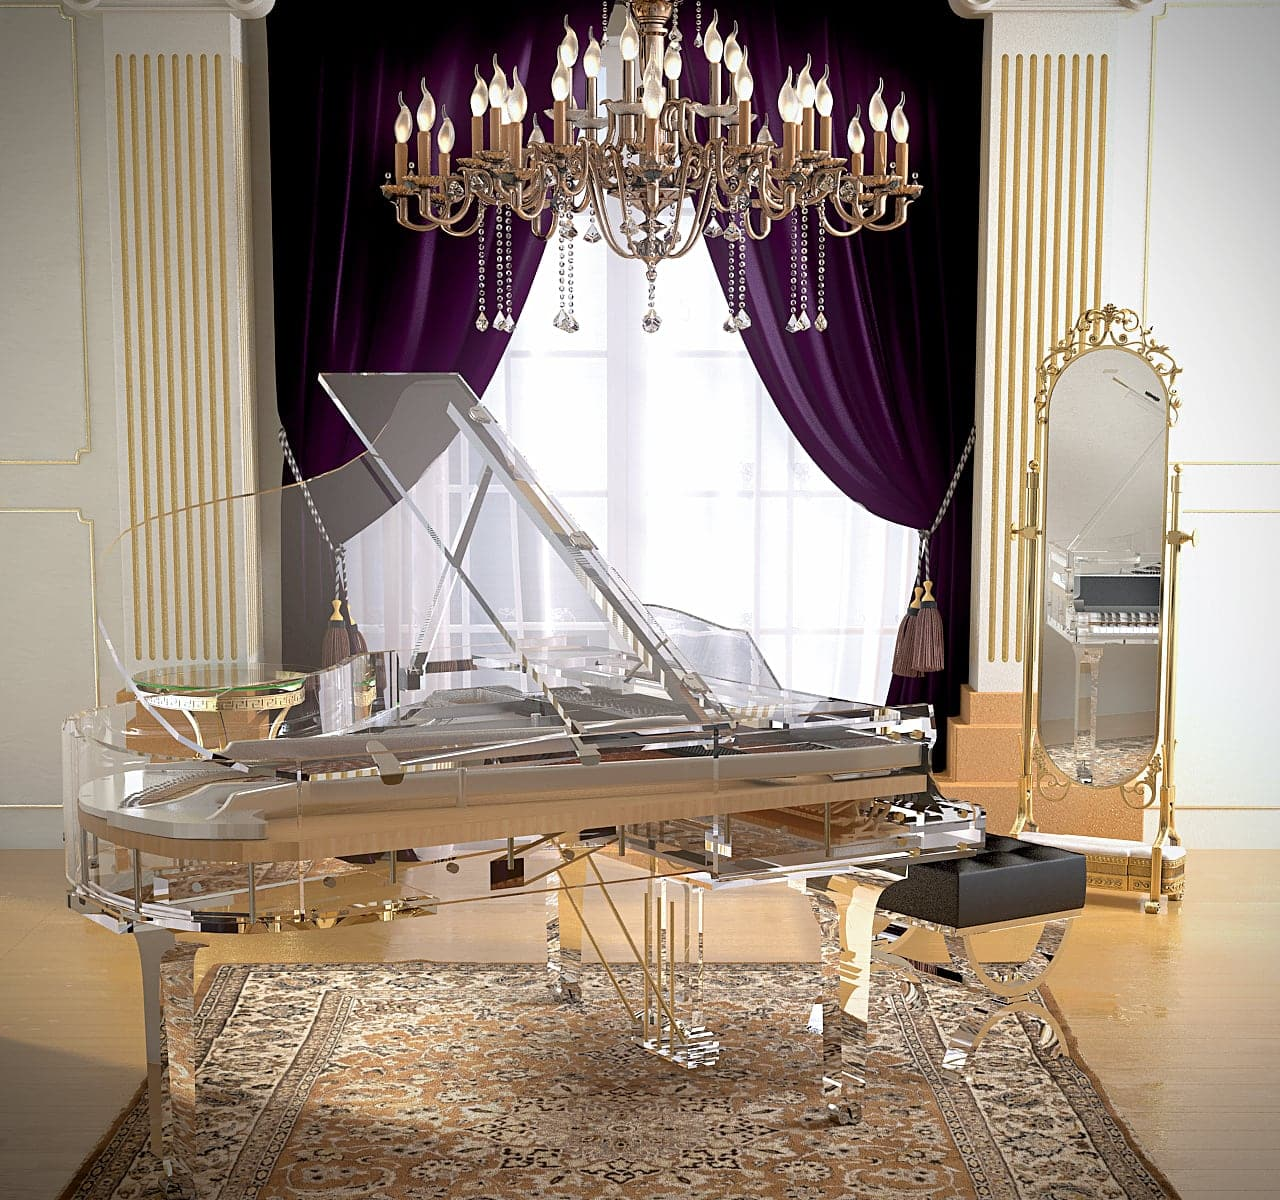 Bluthner Lucid iDyllic Excellence transparent clear piano